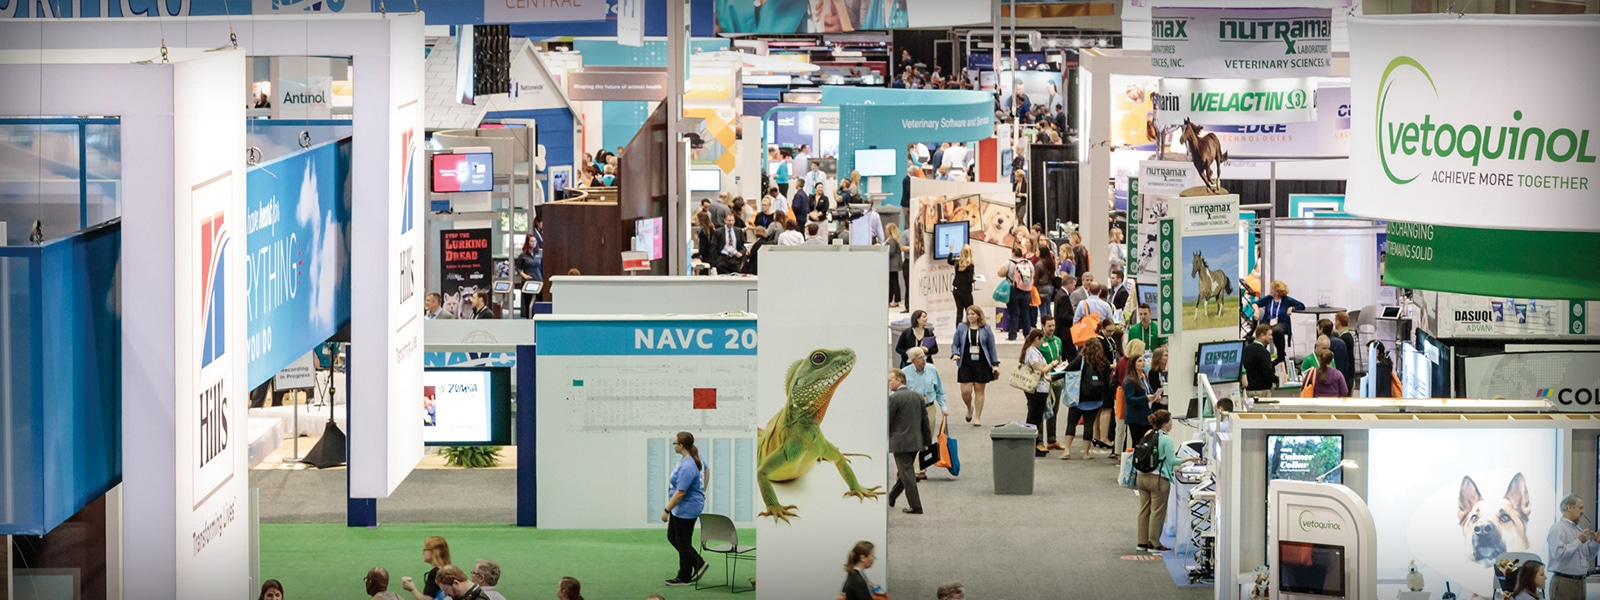 NAVC just completed its 2017 Conference—the last one with that name—in its new home, the Orange County Convention Center (OCCC). Of all the NAVC Conferences I have attended, this one was the most amazing.